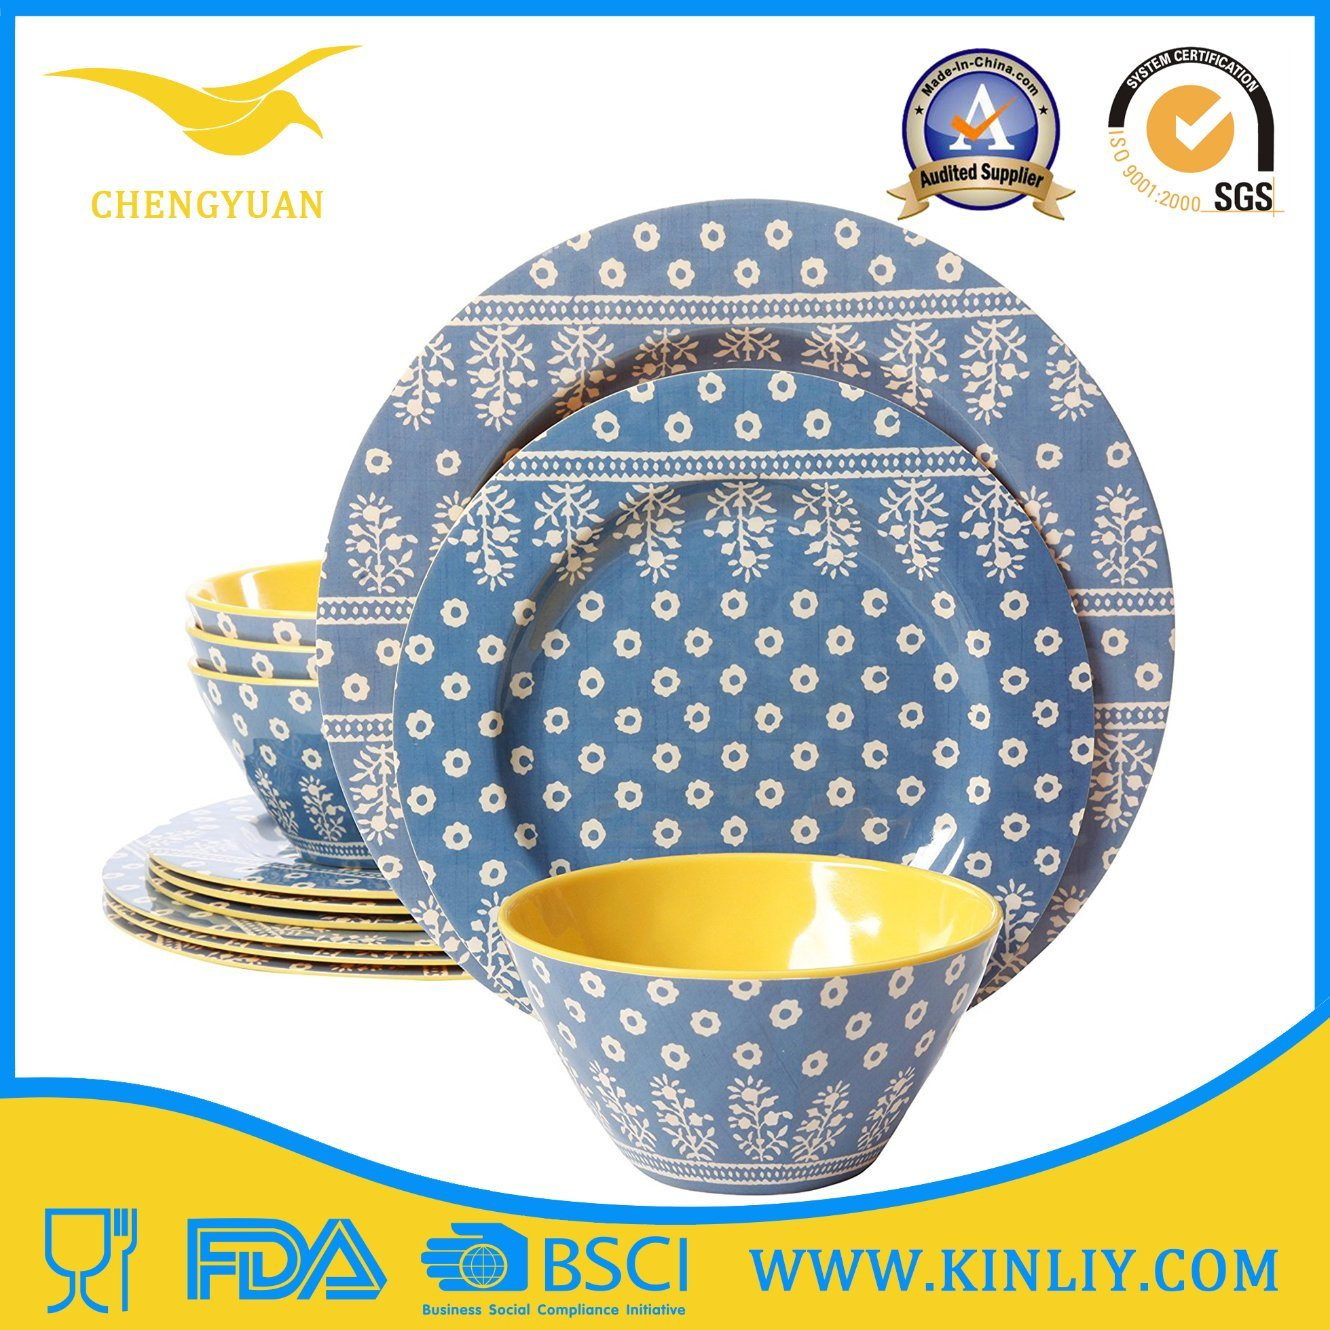 Cheap European Africa China Us Melamine Plastic Restaurant Safe Round Square Modern Home Food Set Dish Dishware Dinner Plate Cup Bowl Tray Dinnerware Tableware